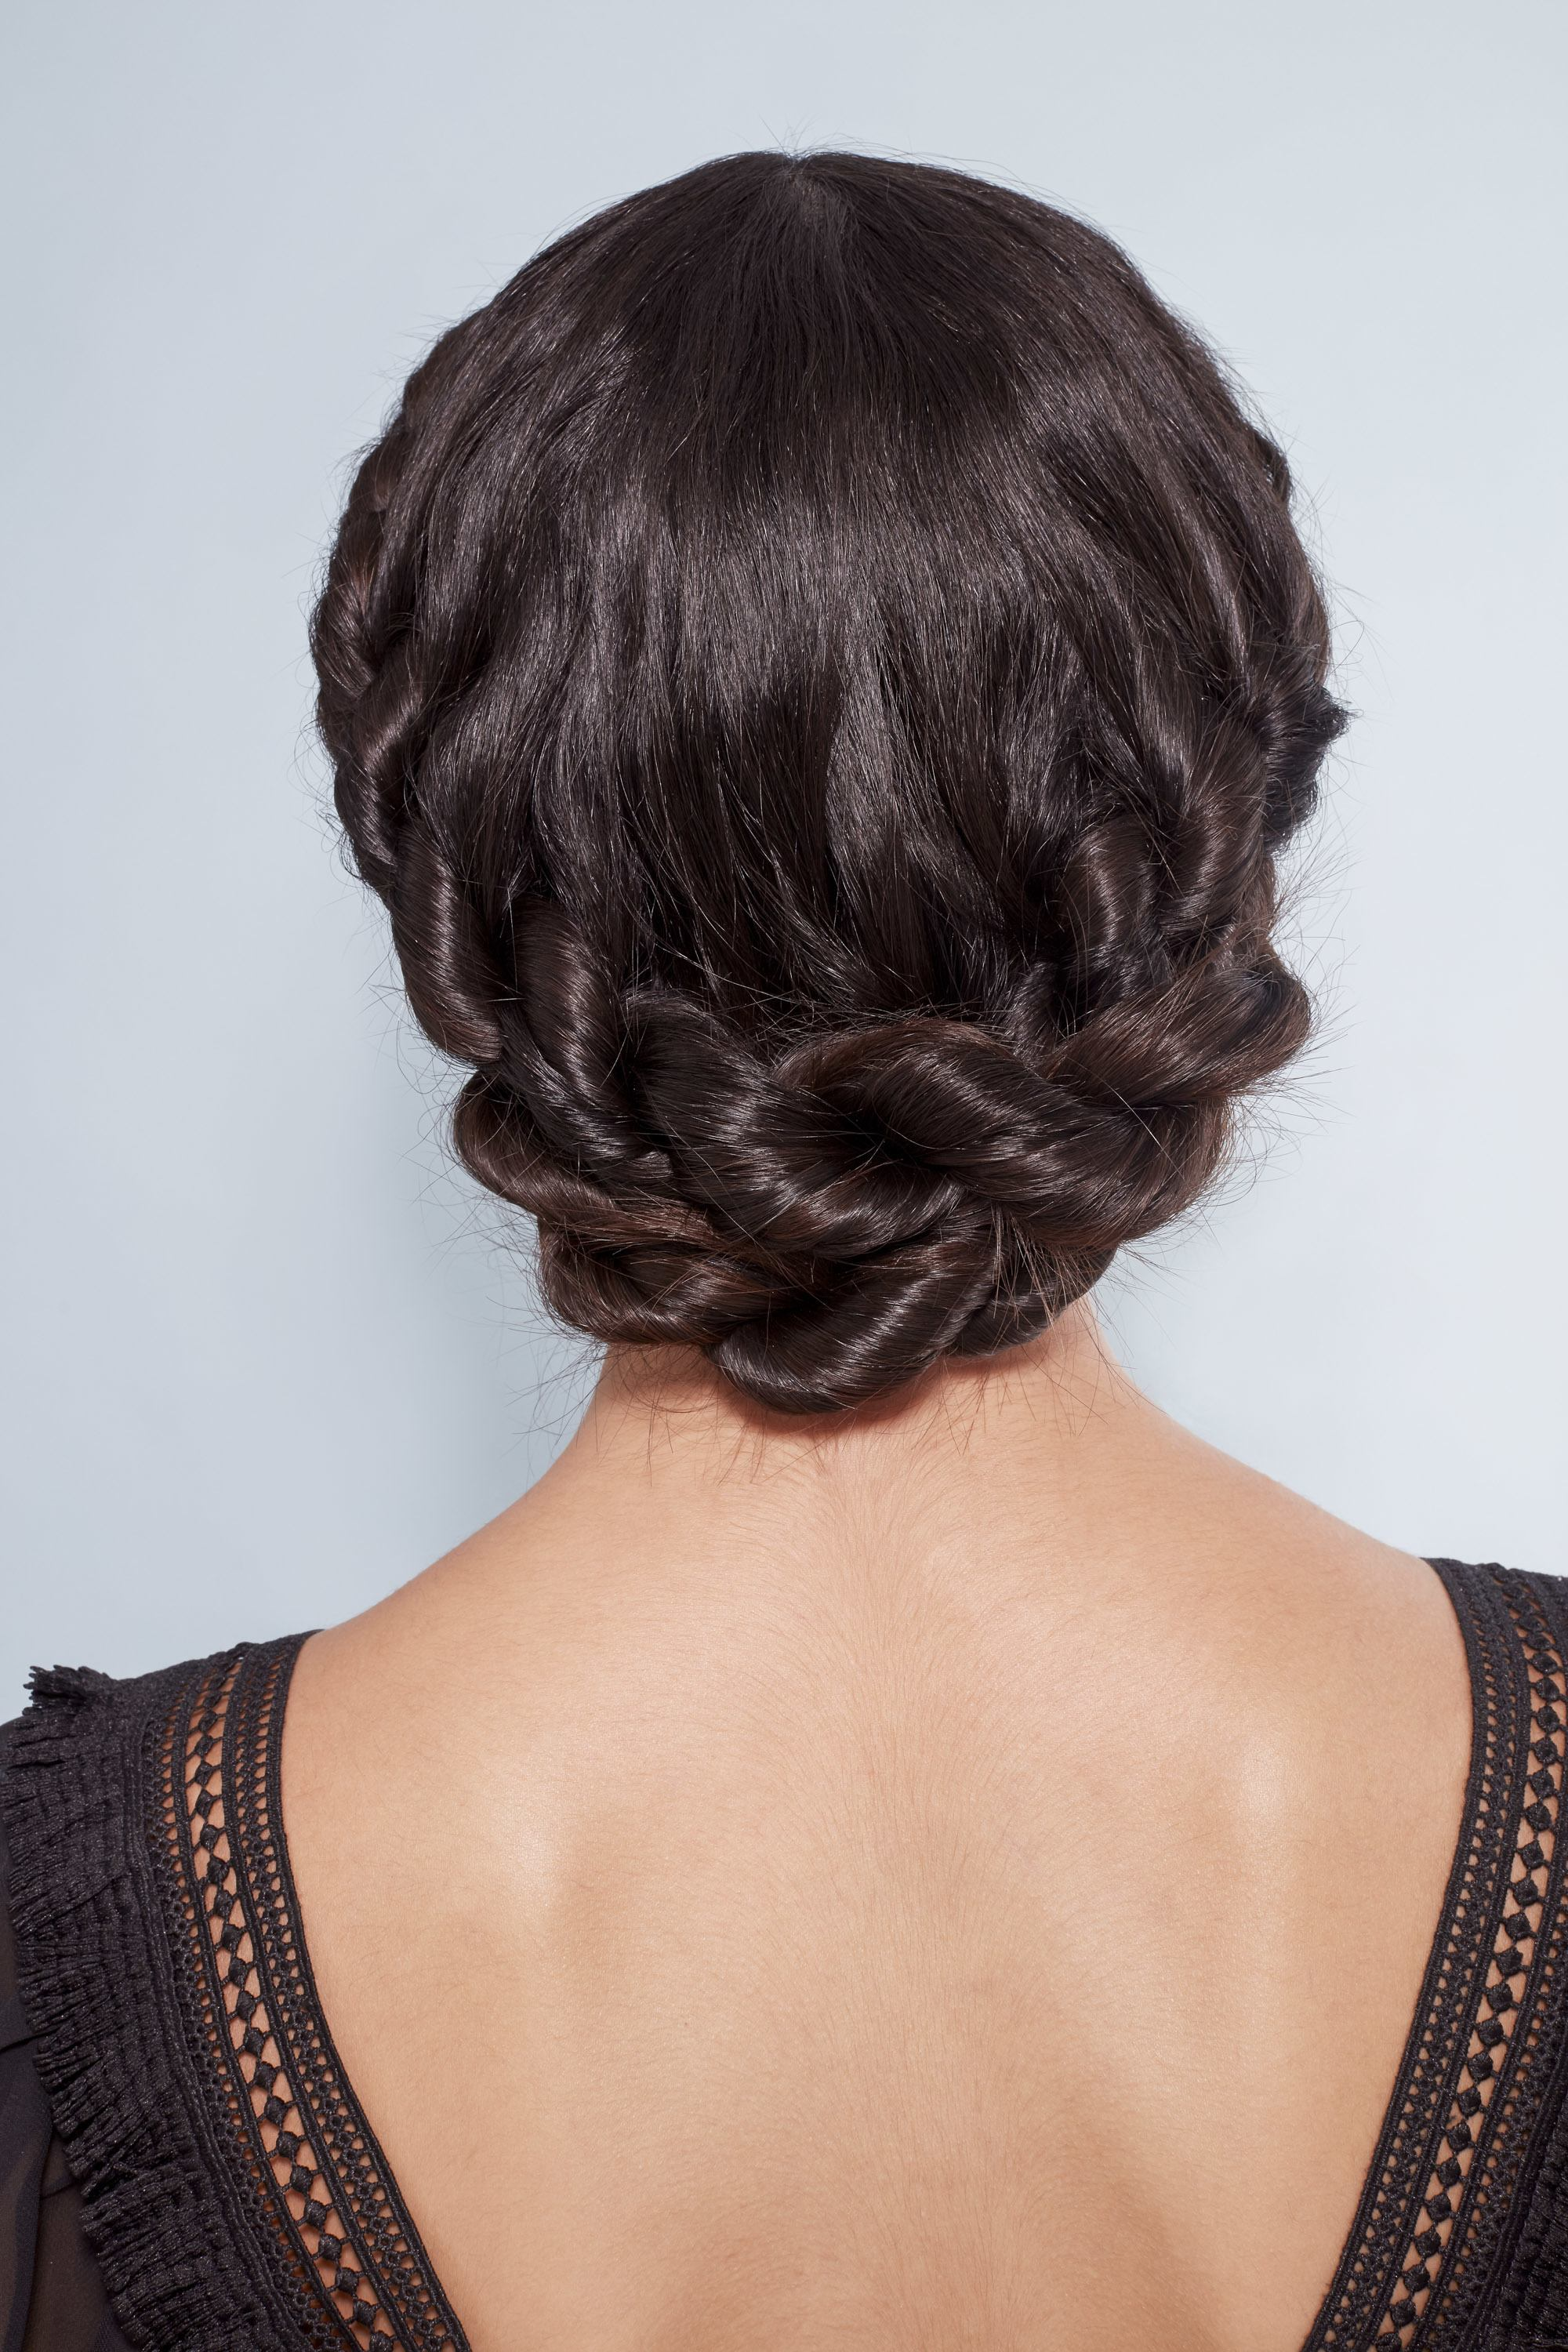 Back shot of woman with dark brown hair styled into a low twisted crown braid, wearing all black and posing in the All Things Hair UK studio